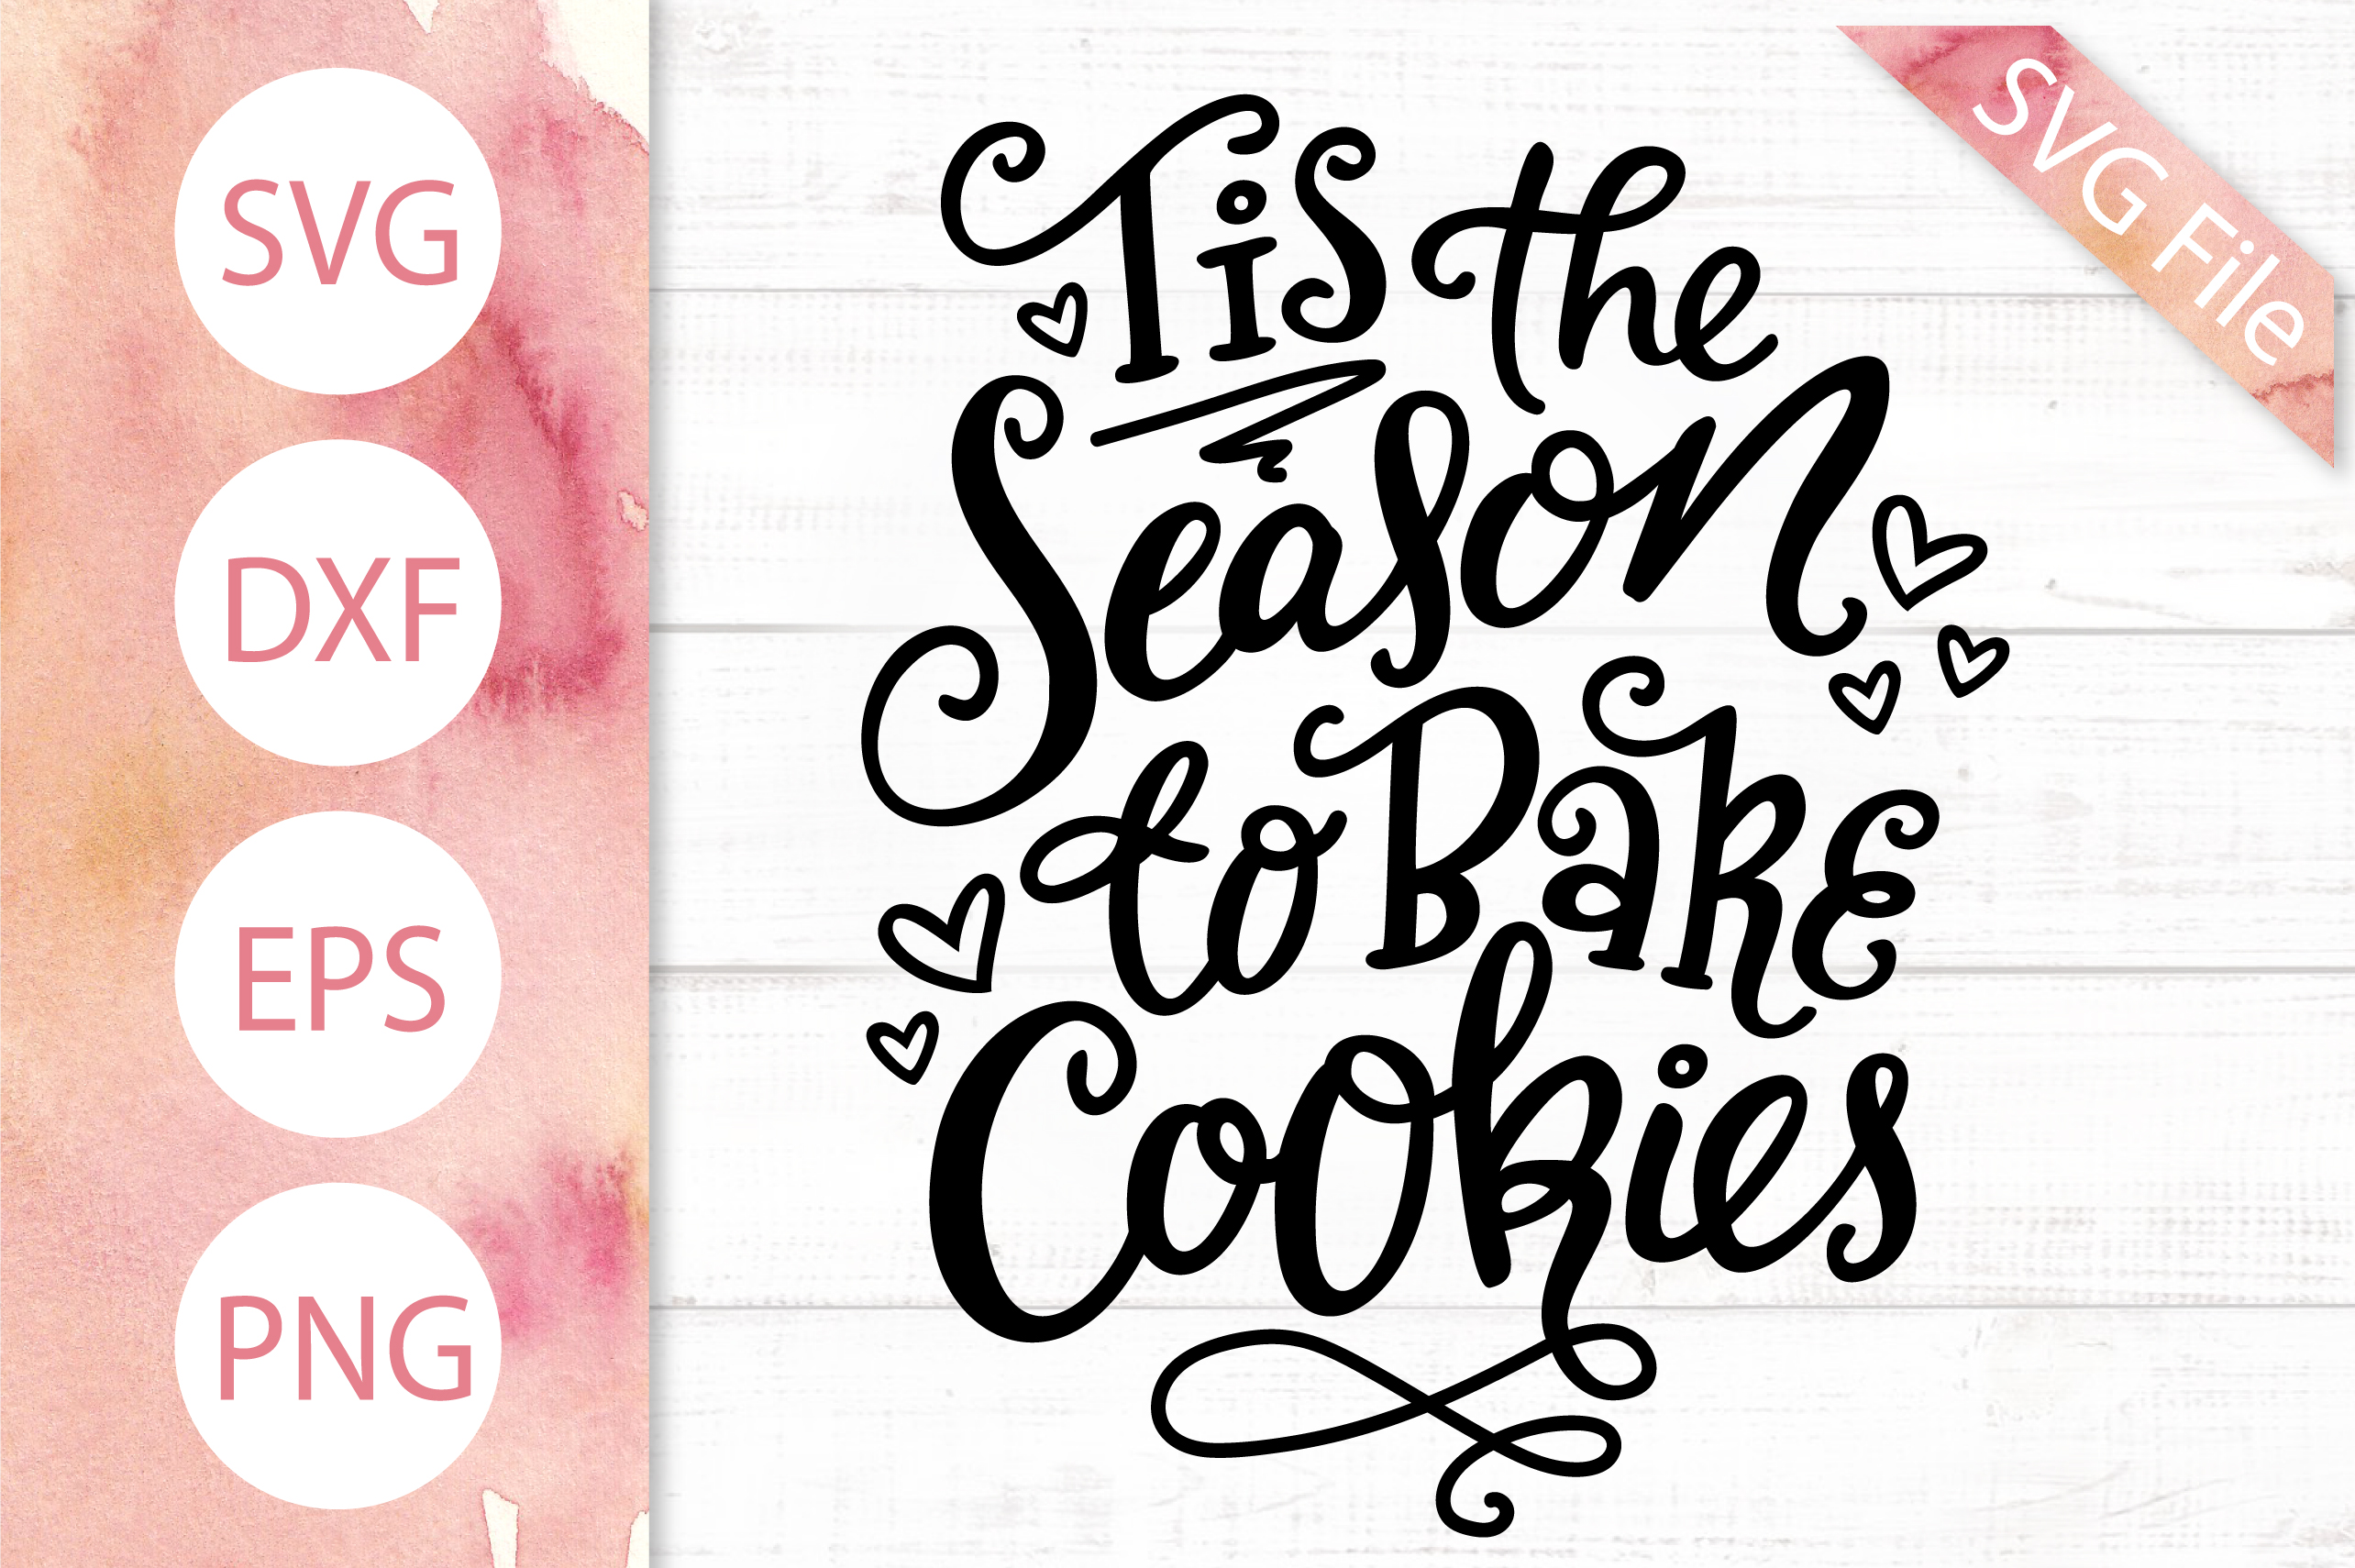 Christmas Baking SVG Bundle! 7 Cute Holiday Quote Designs example image 7